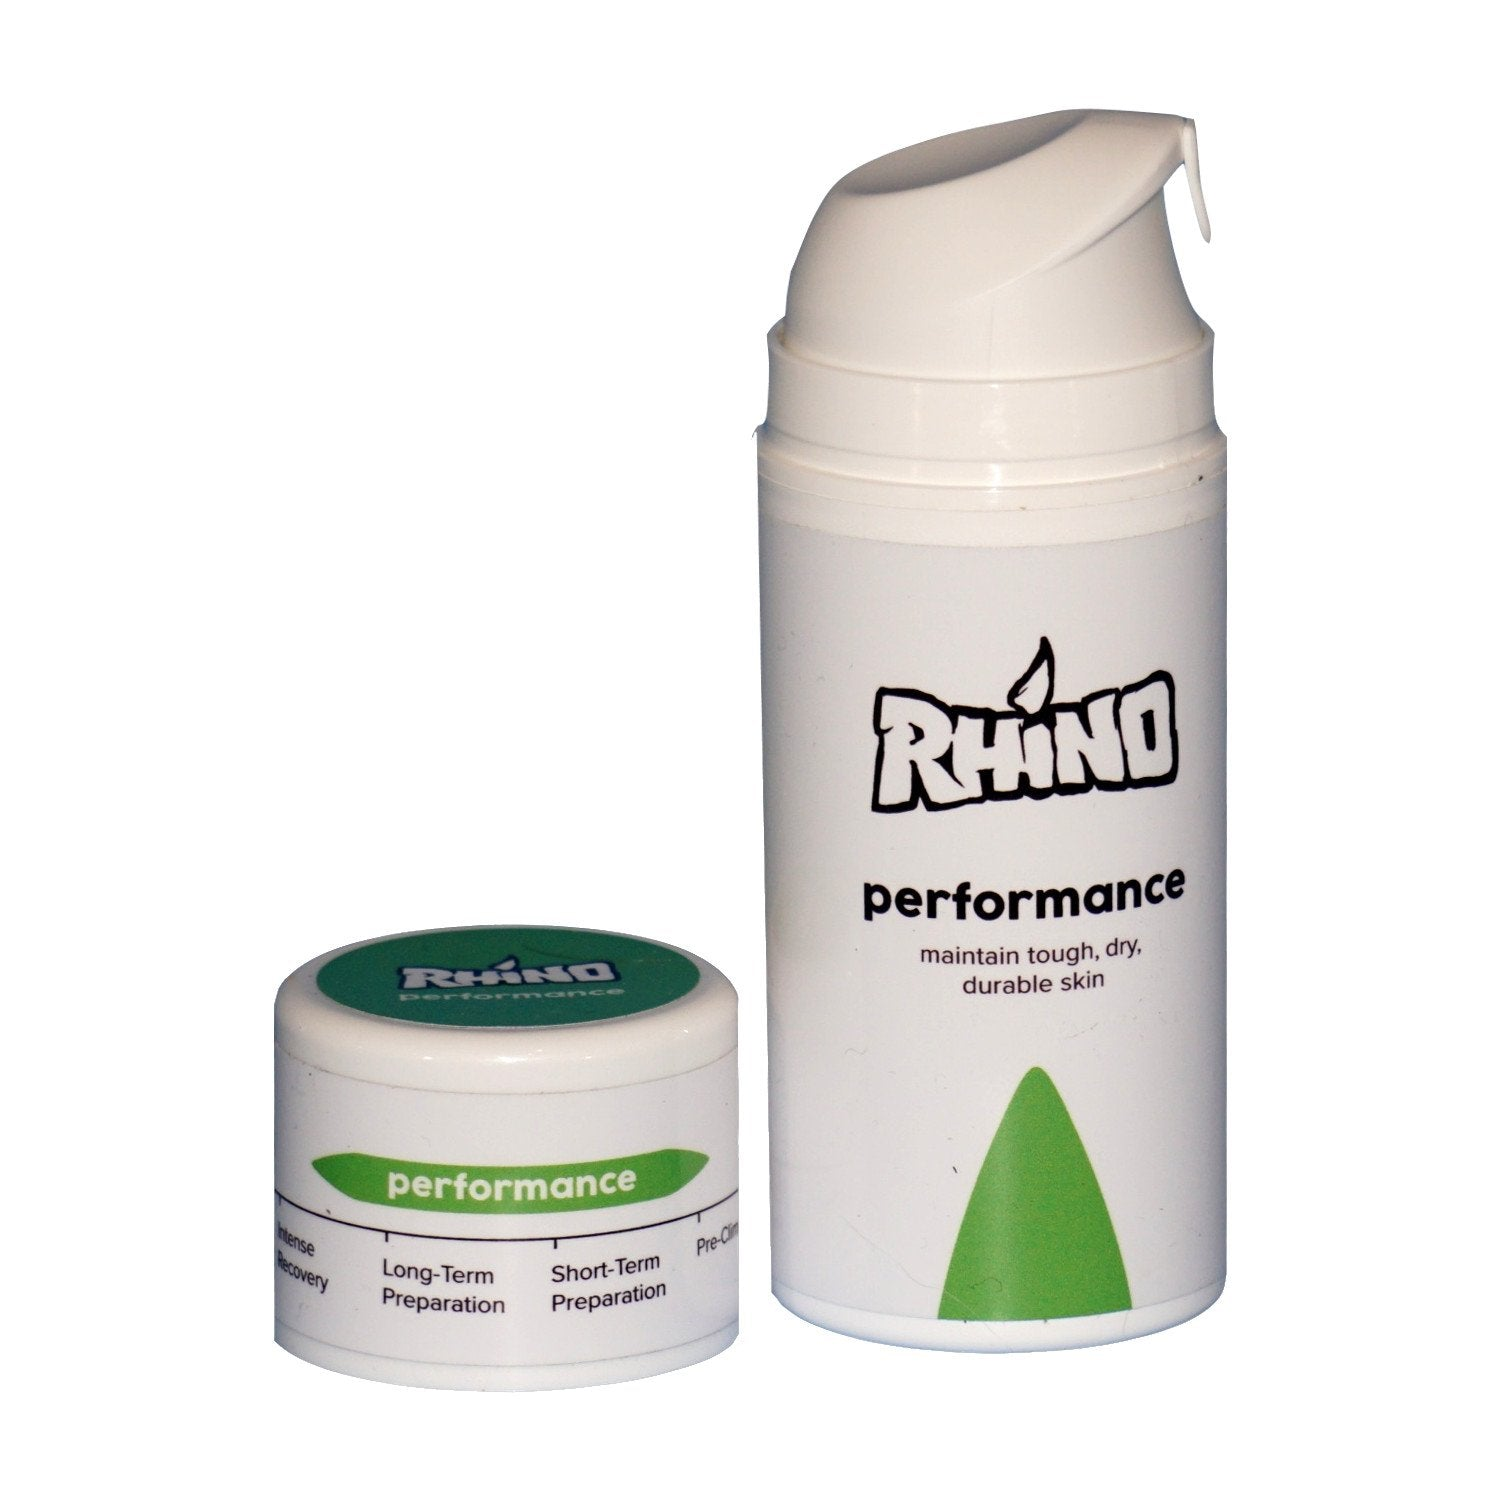 Rhino Skin Solutions PERFORMANCE (3.5oz/99ml)